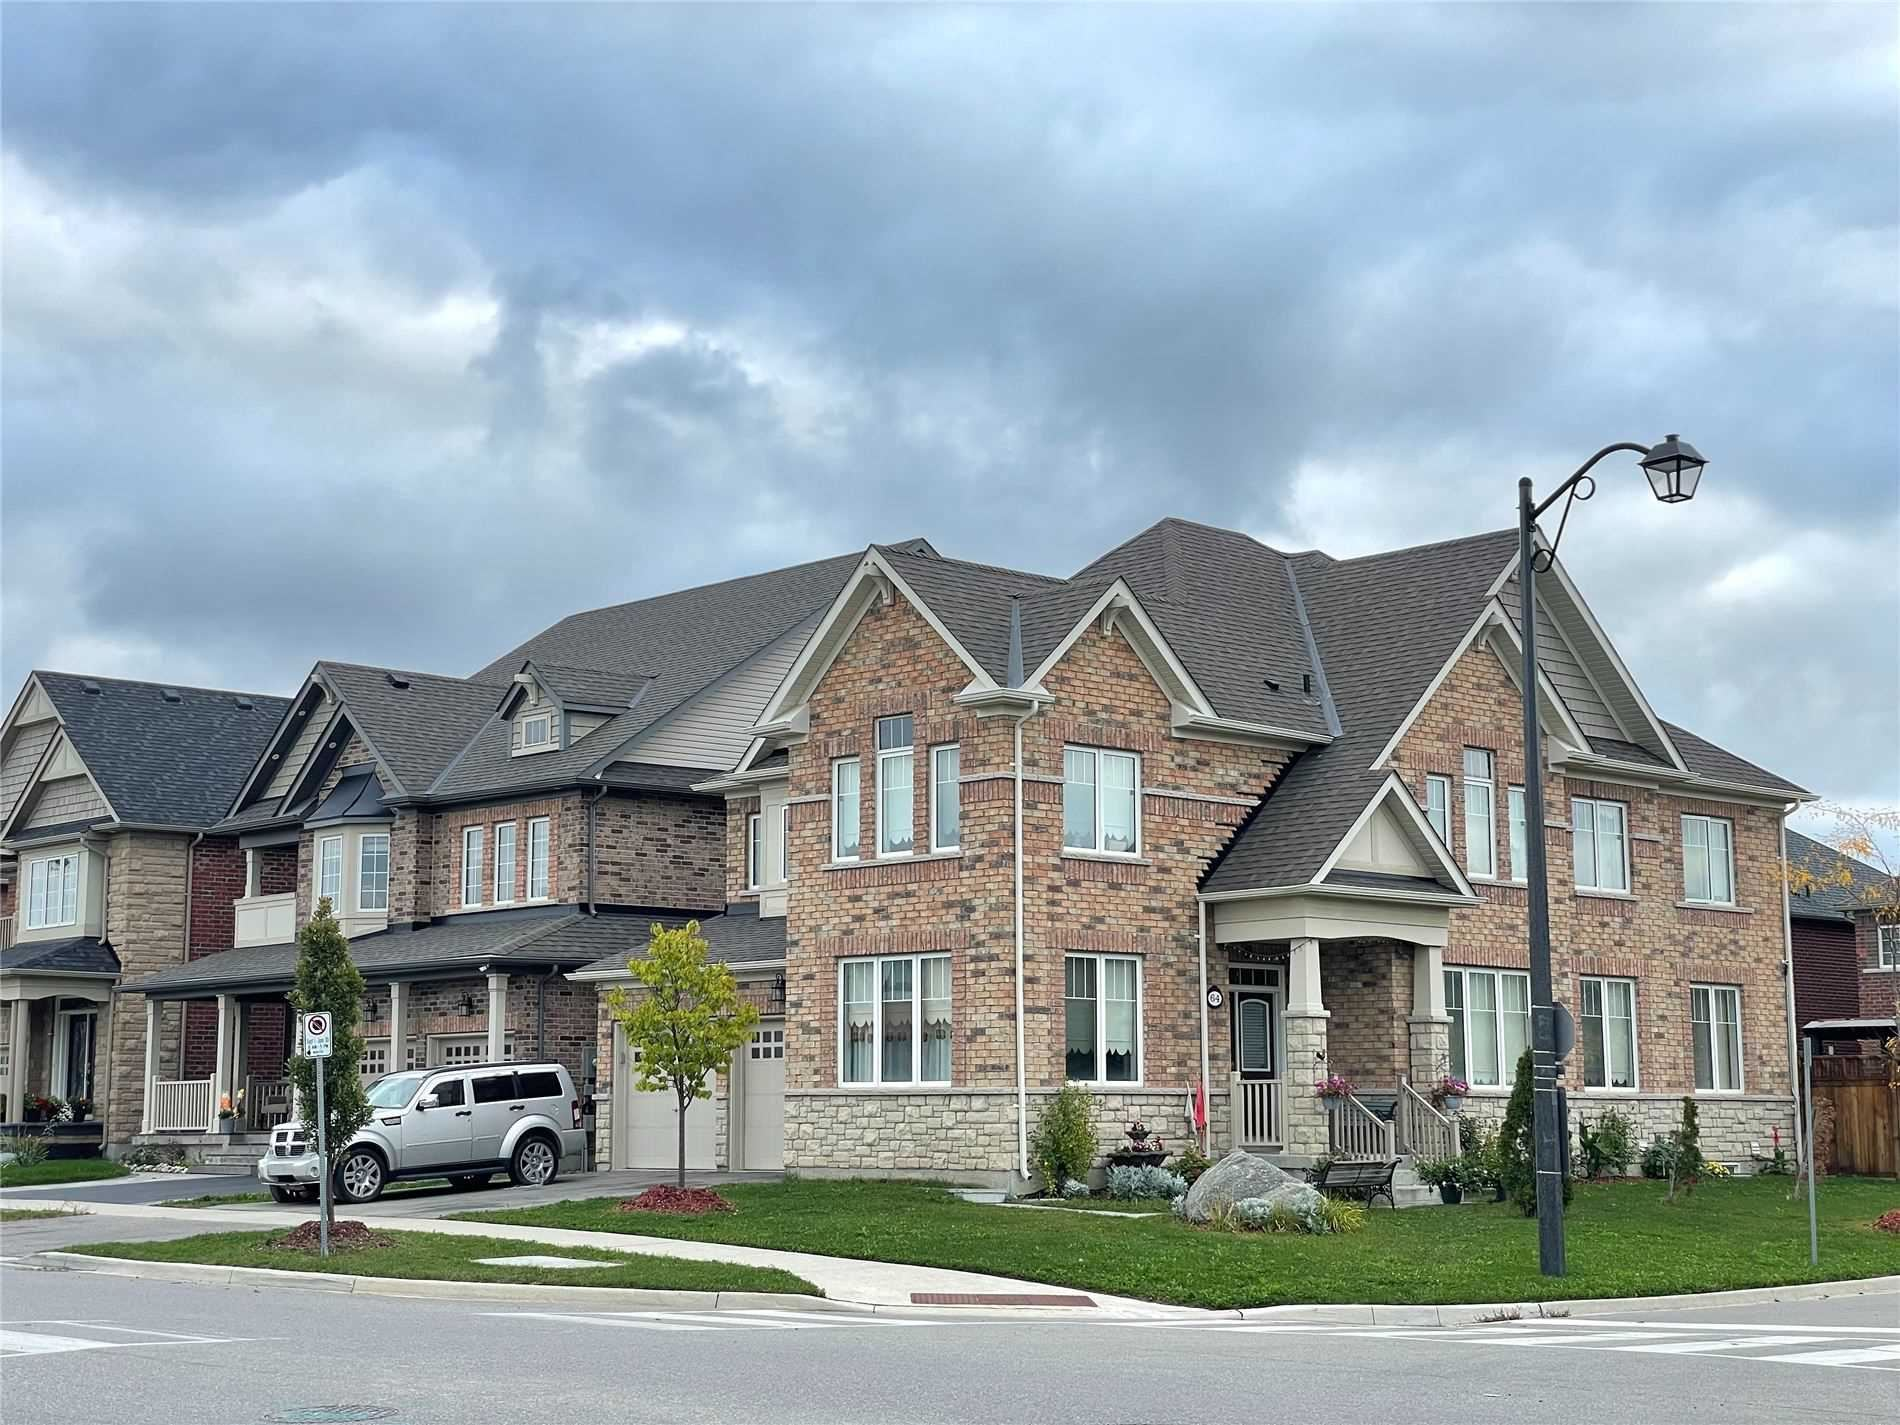 64 Valleybrook Cres, Caledon, ON L7A1H3 - MLS#: W5403912